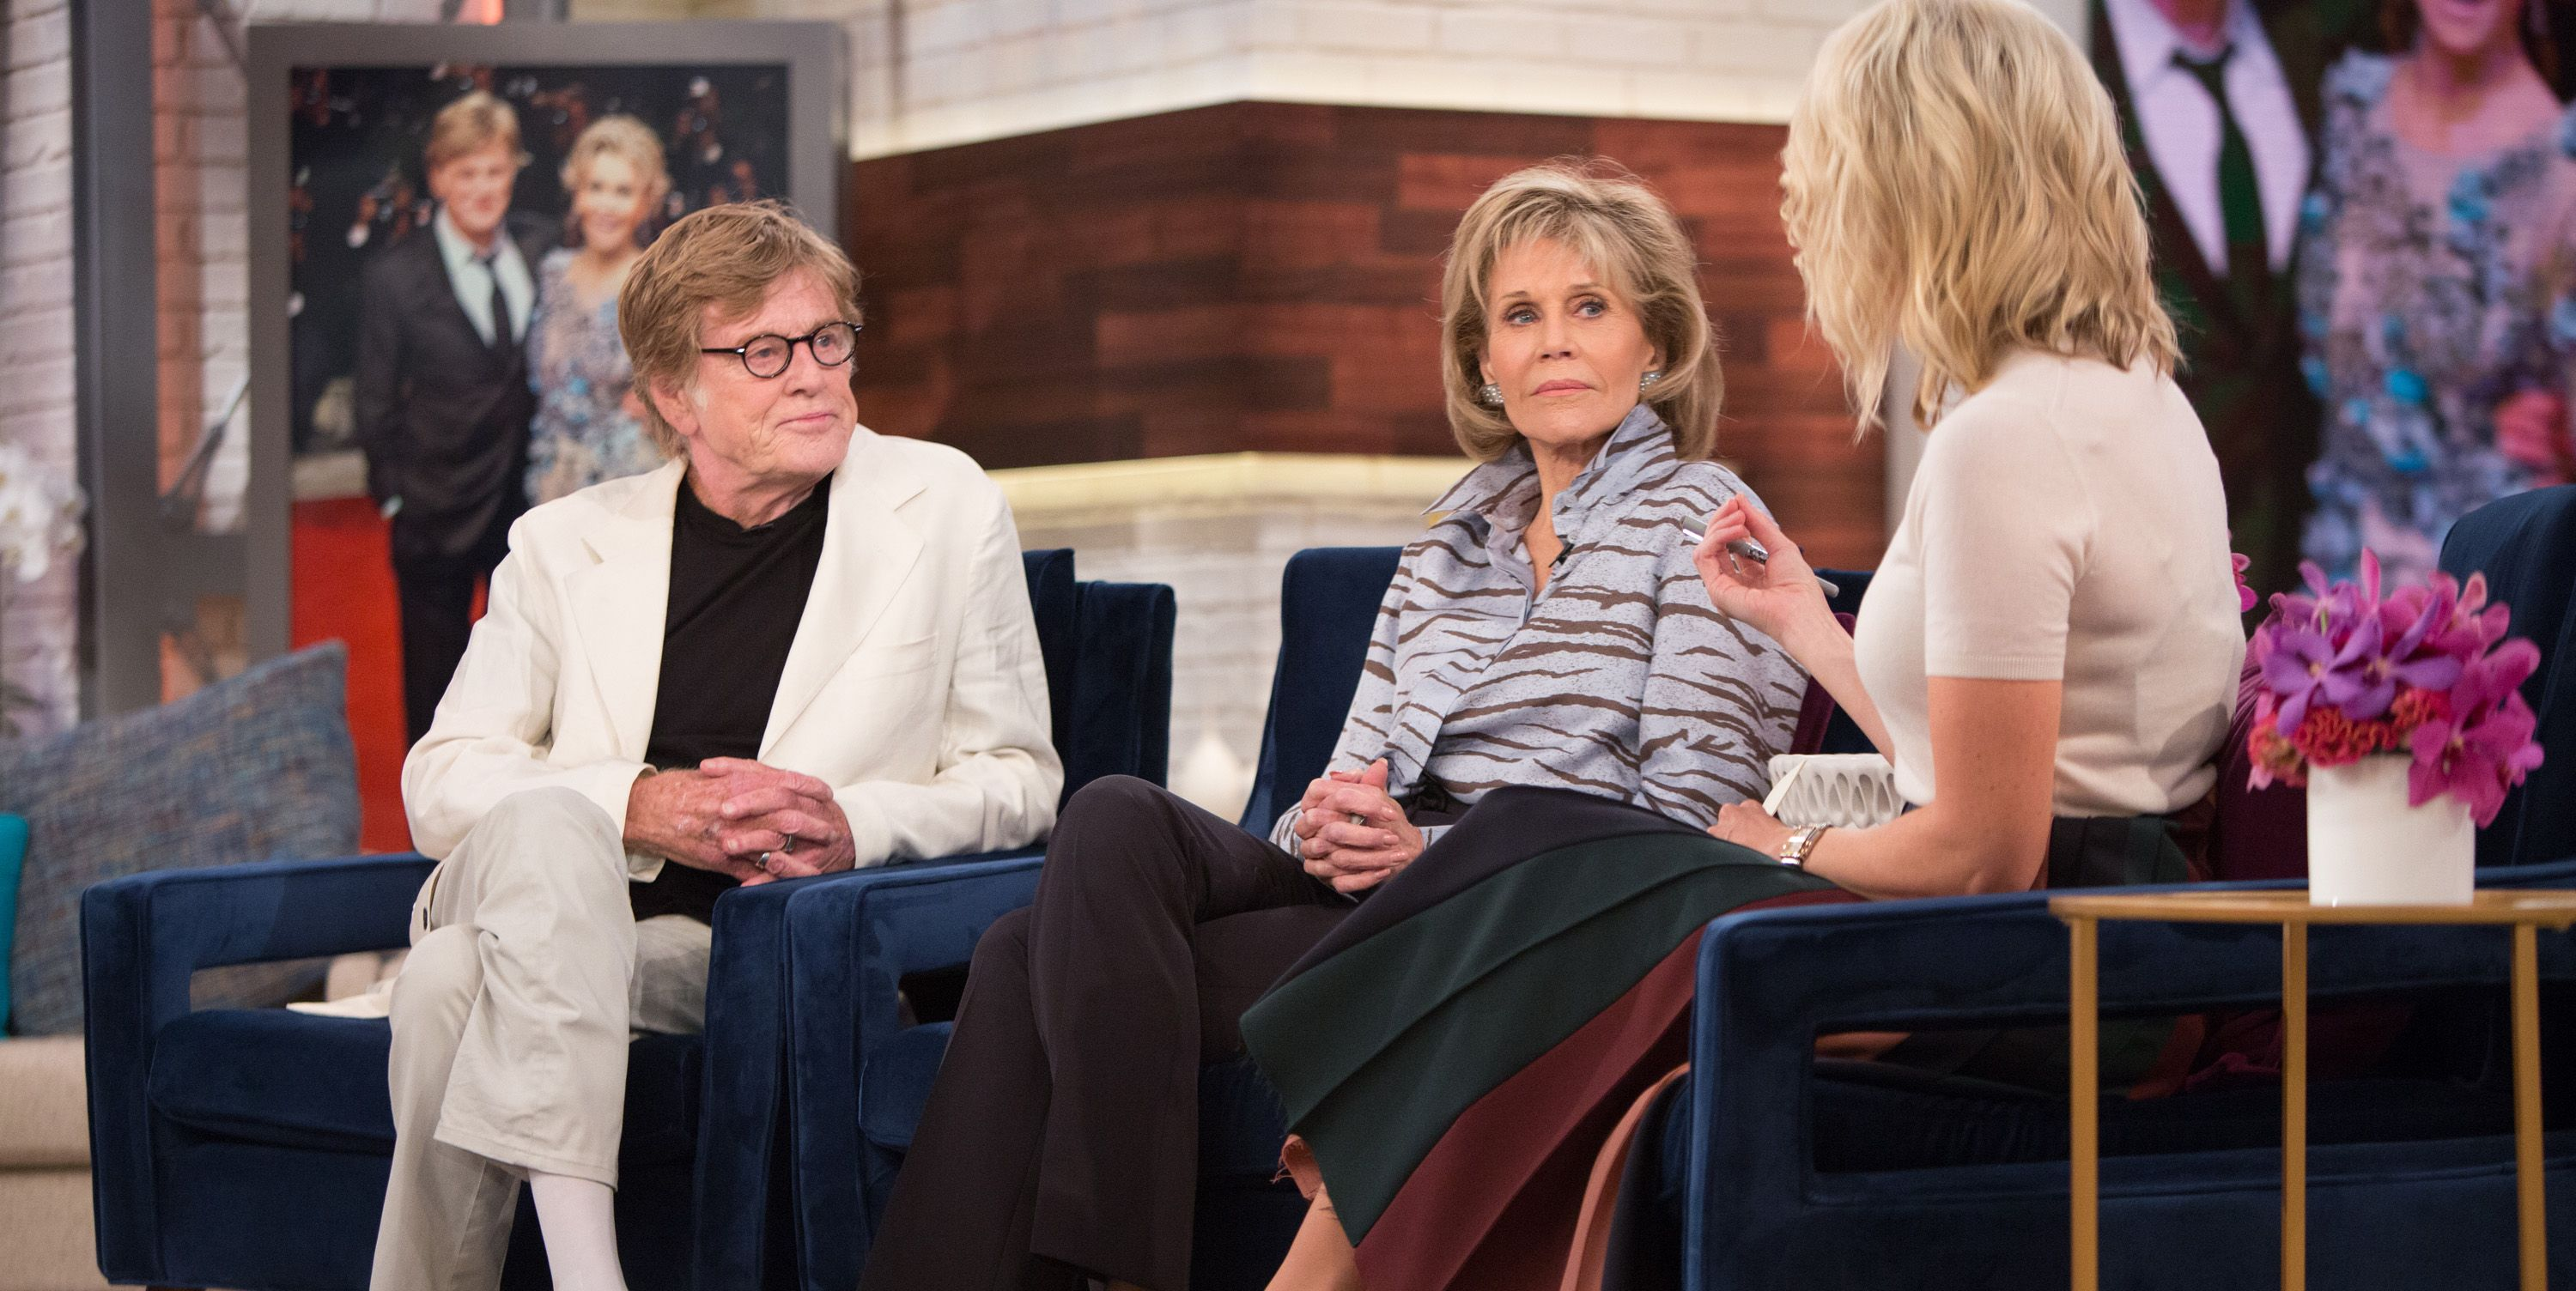 Robert Redford, Jane Fonda, Megyn Kelly